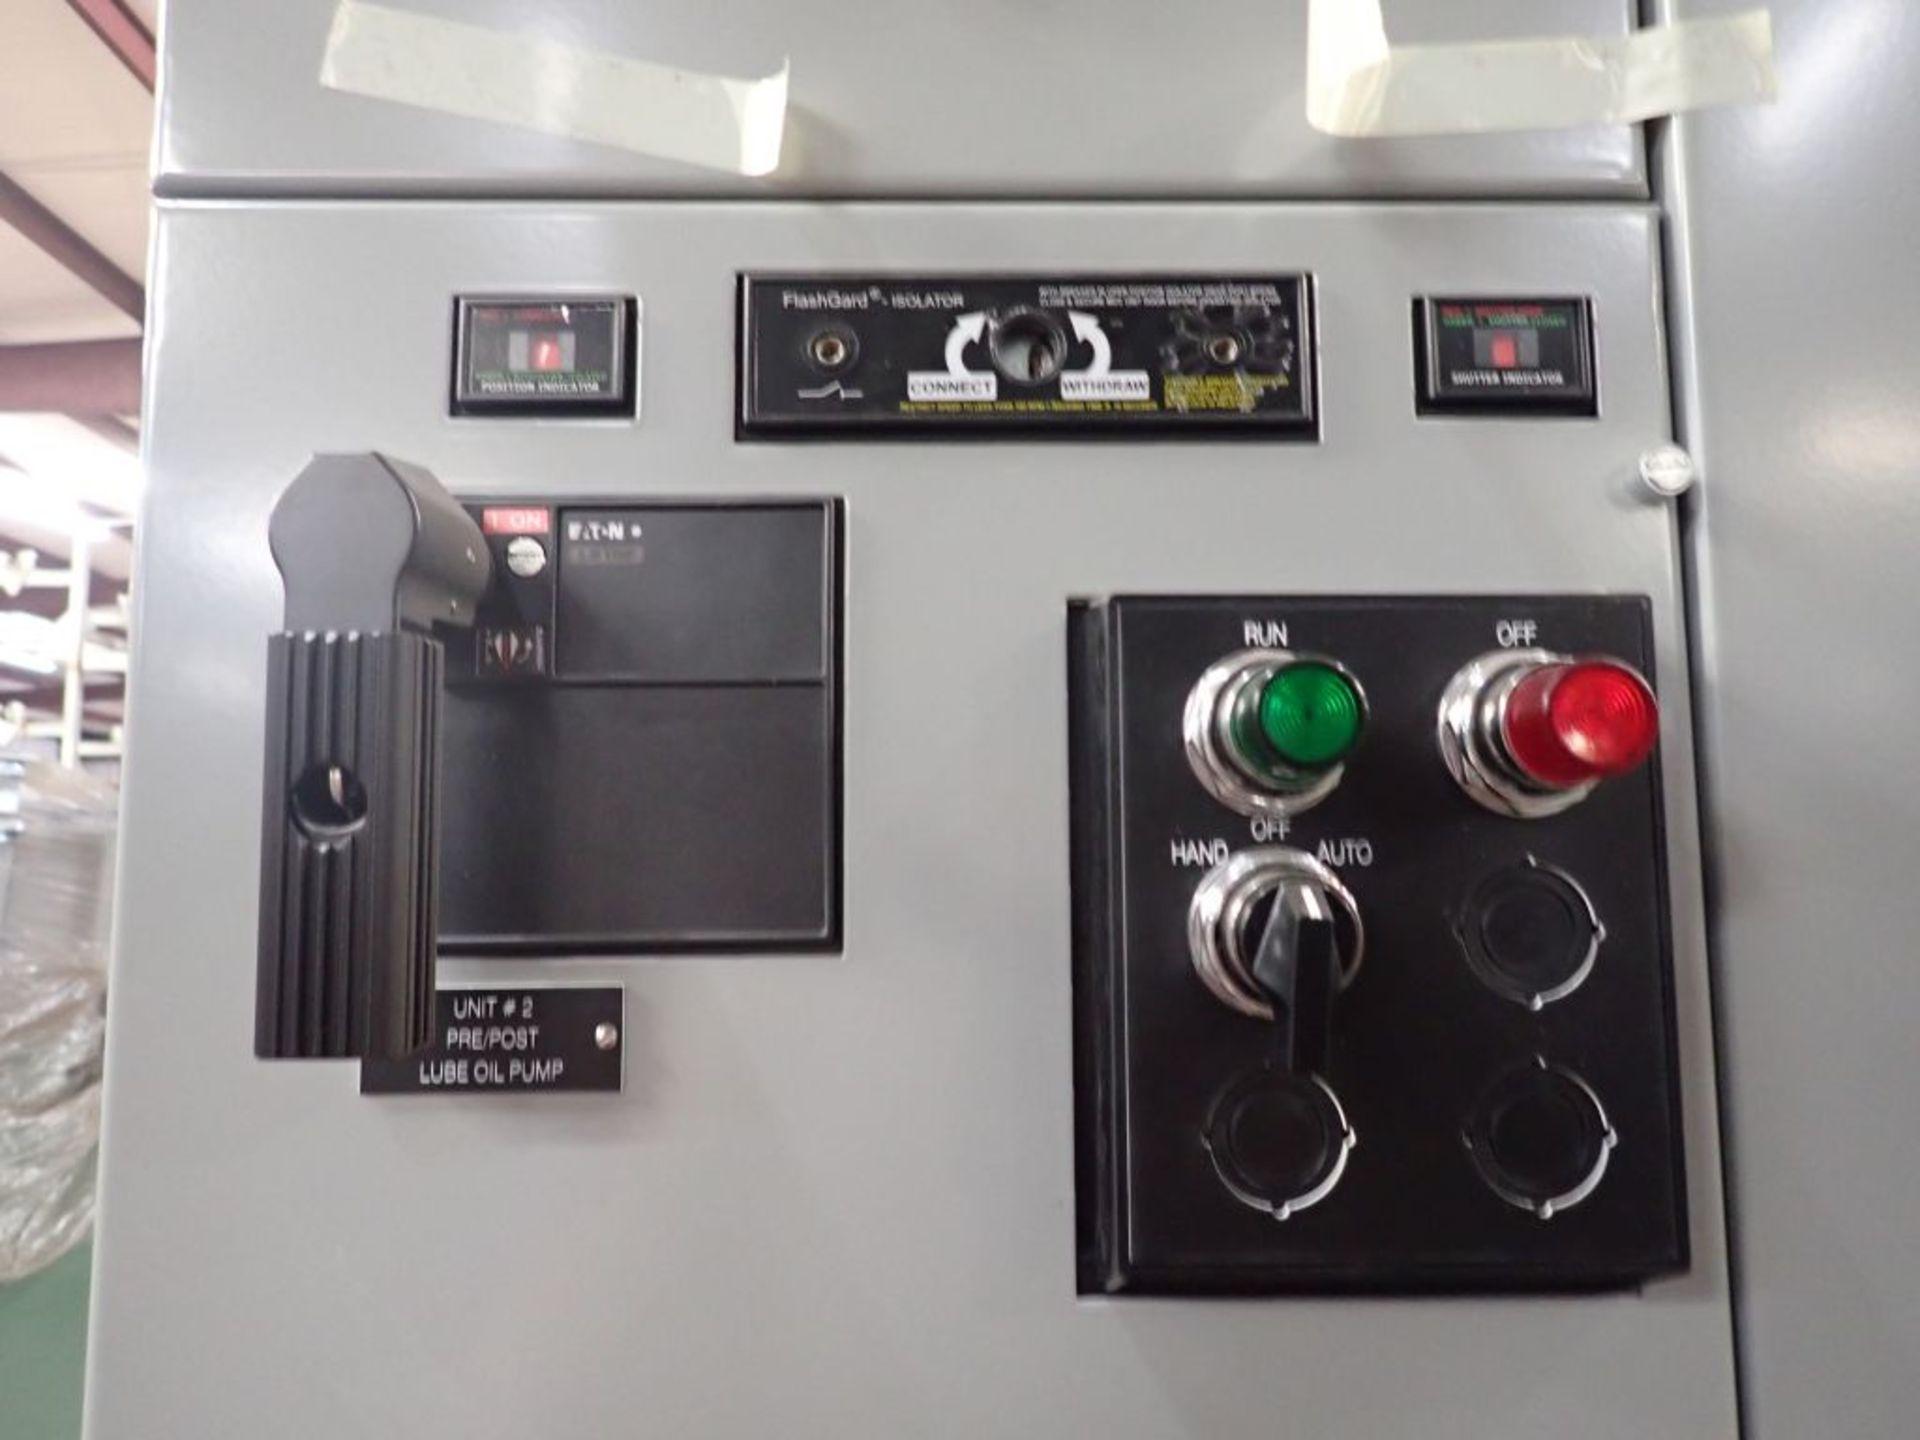 Eaton Freedom 2100 Series Motor Control Center   (2) F206-15A-10HP; (1) F206-30A-10HP; (1) FDRB- - Image 11 of 61